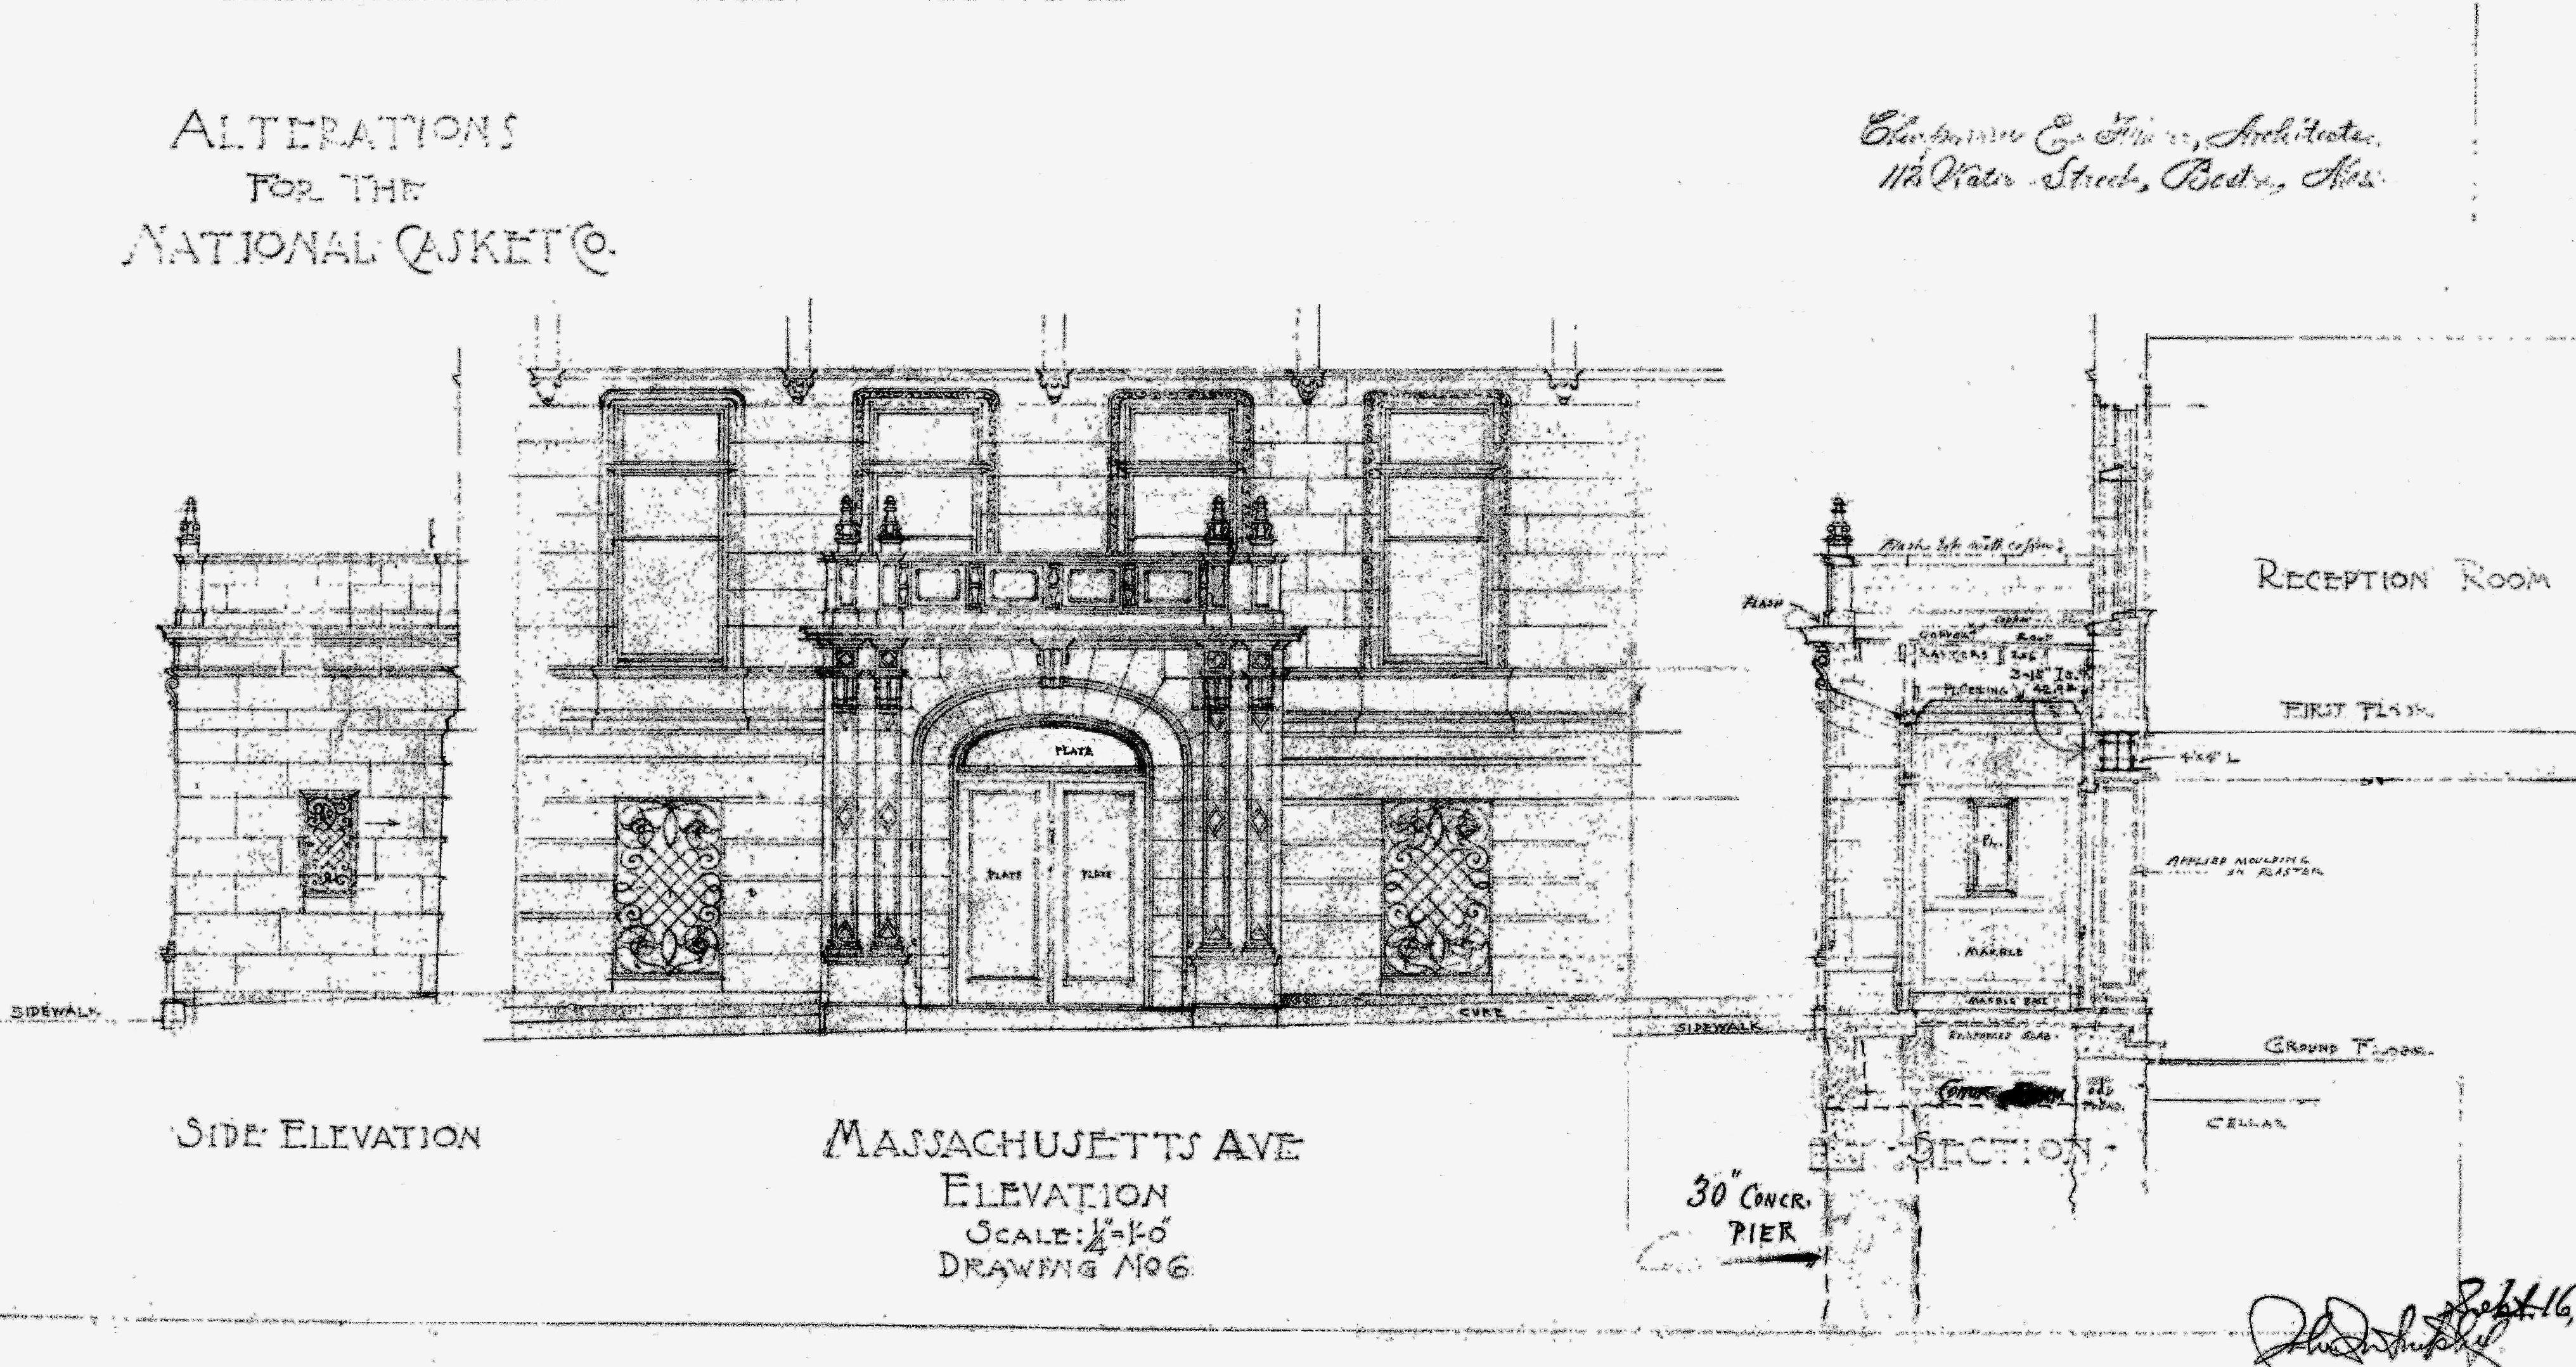 355 commonwealth back bay houses architectural rendering of new massachusetts avenue entrance to 355 commonwealth 1926 by chapman and malvernweather